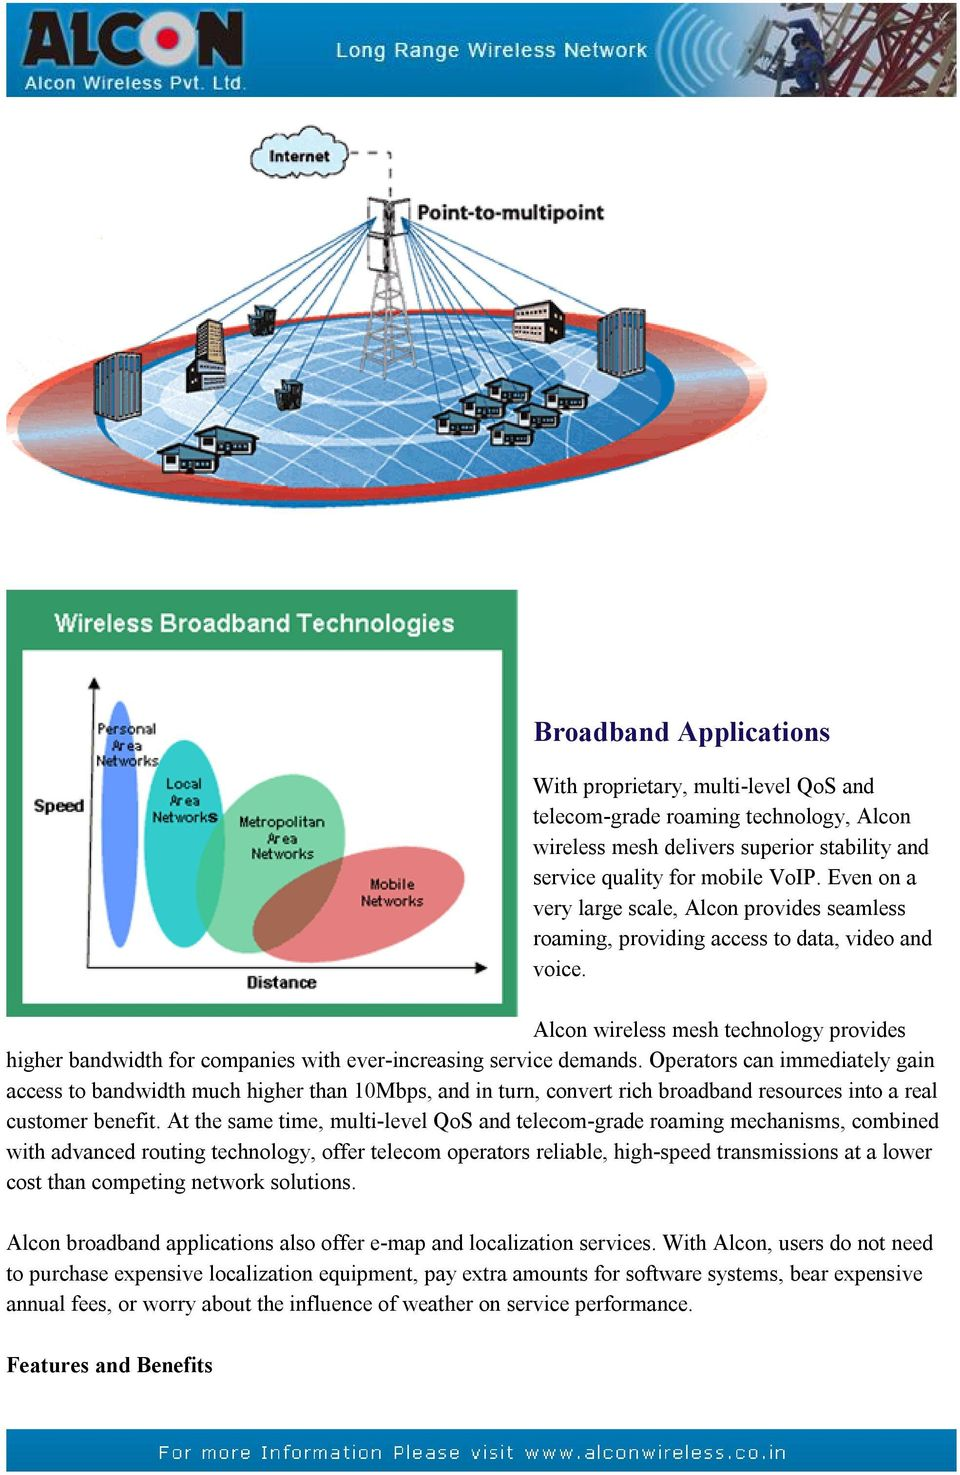 Alcon wireless mesh technology provides higher bandwidth for companies with ever-increasing service demands.